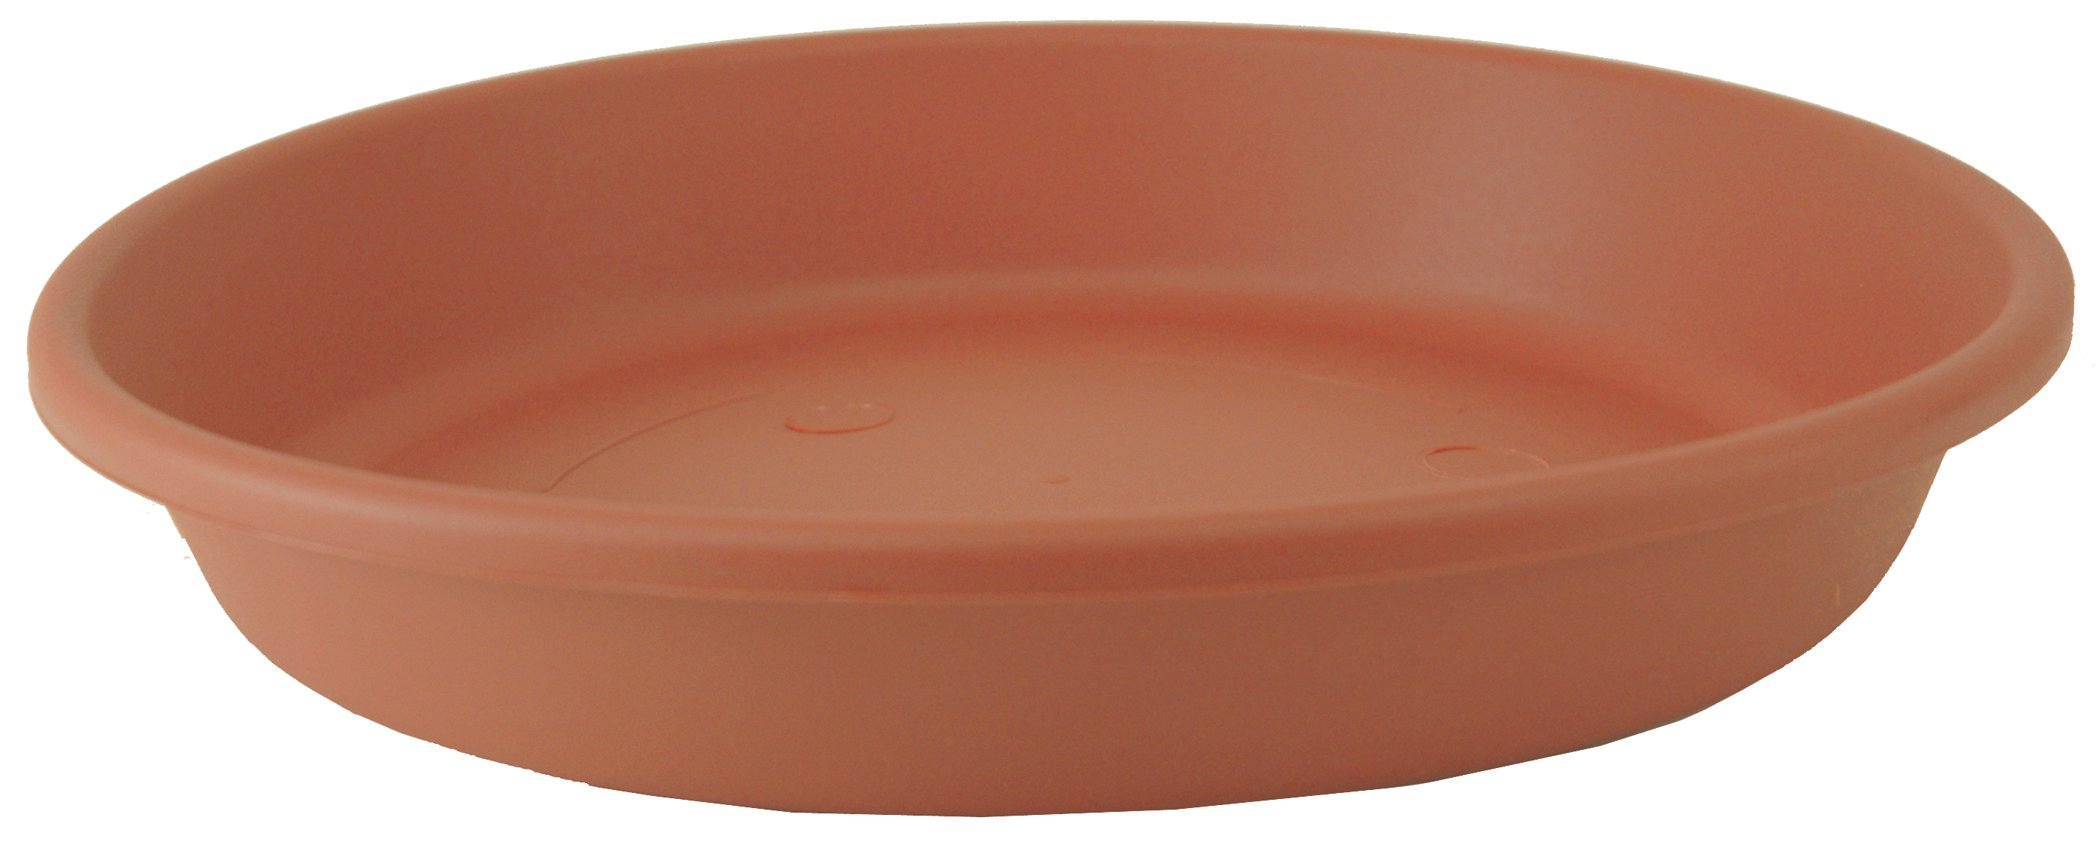 Akro Mils SLI20000E35 Classic Saucer for 20-Inch Classic Pot, Clay Color, 17.63-Inch